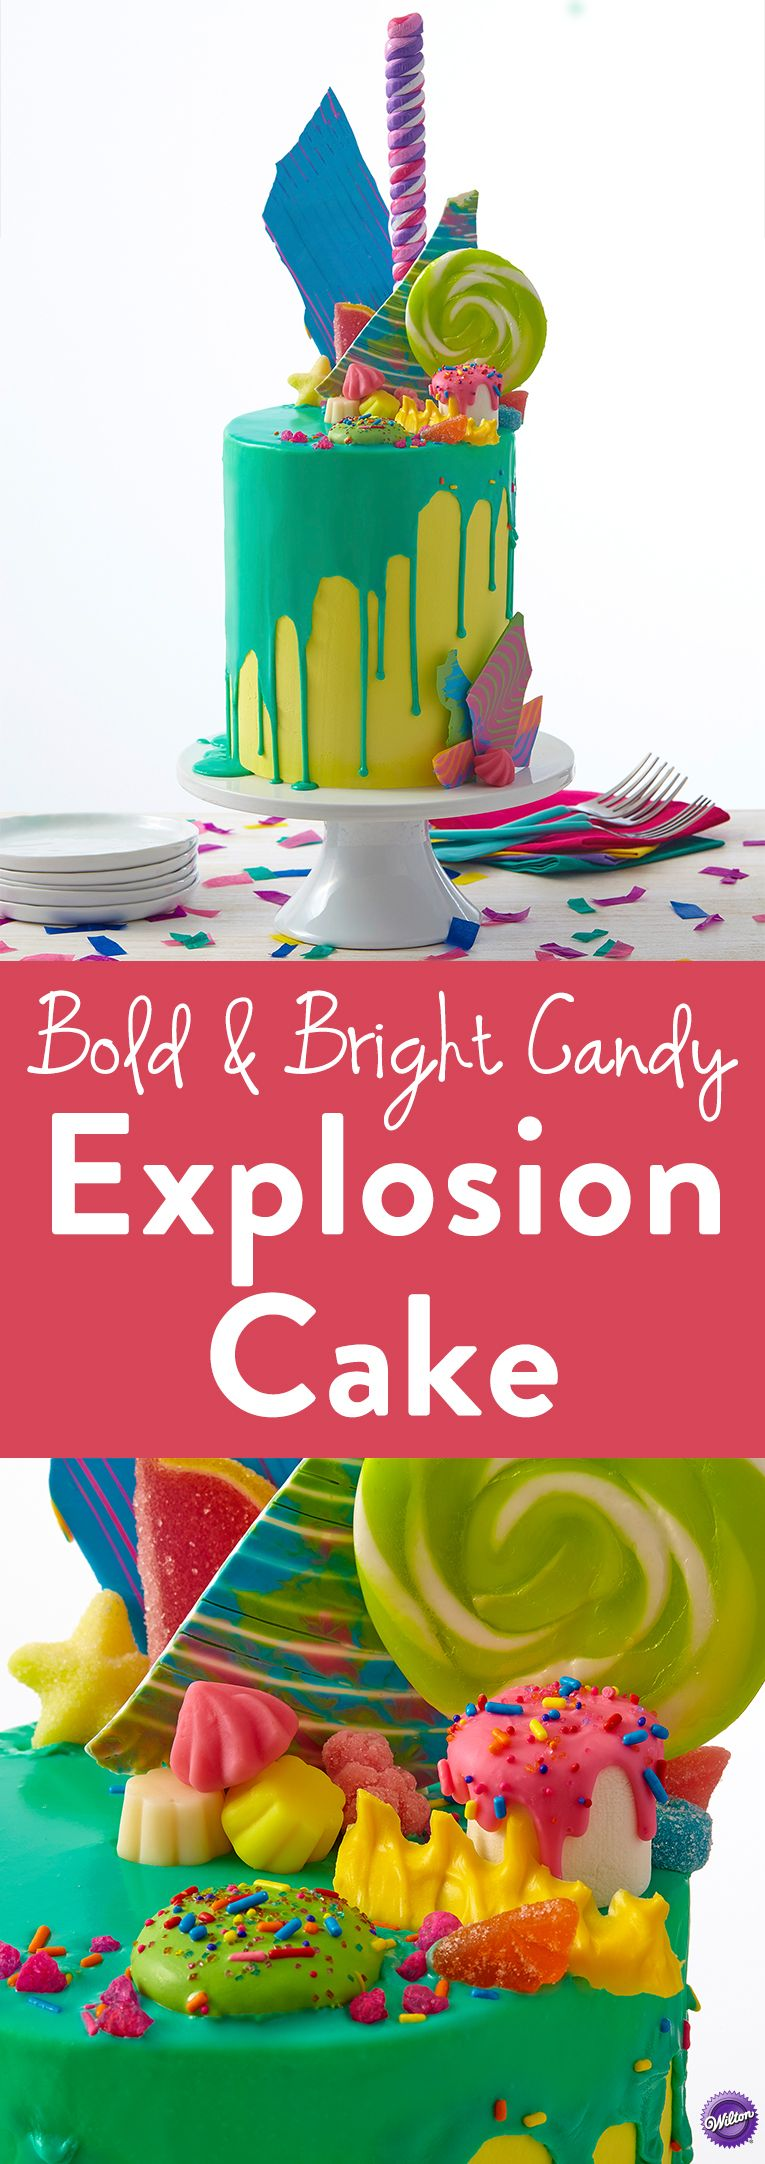 Bold And Bright Candy Explosion Cake The Piqued Interest